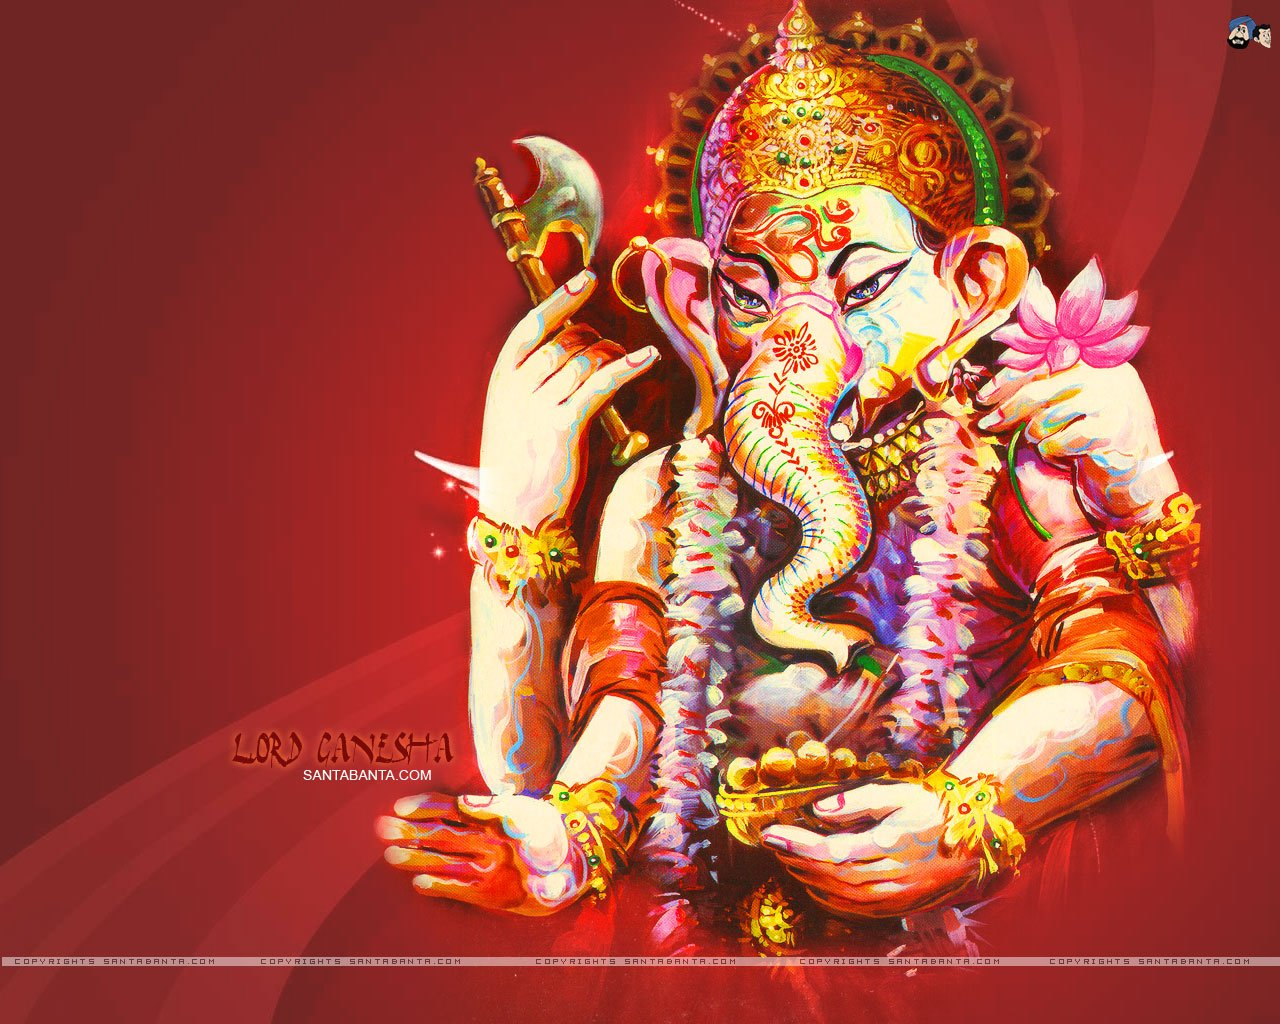 Lord Ganesha Pictures Hd: Pictures Of Lord Ganesha Wallpapers